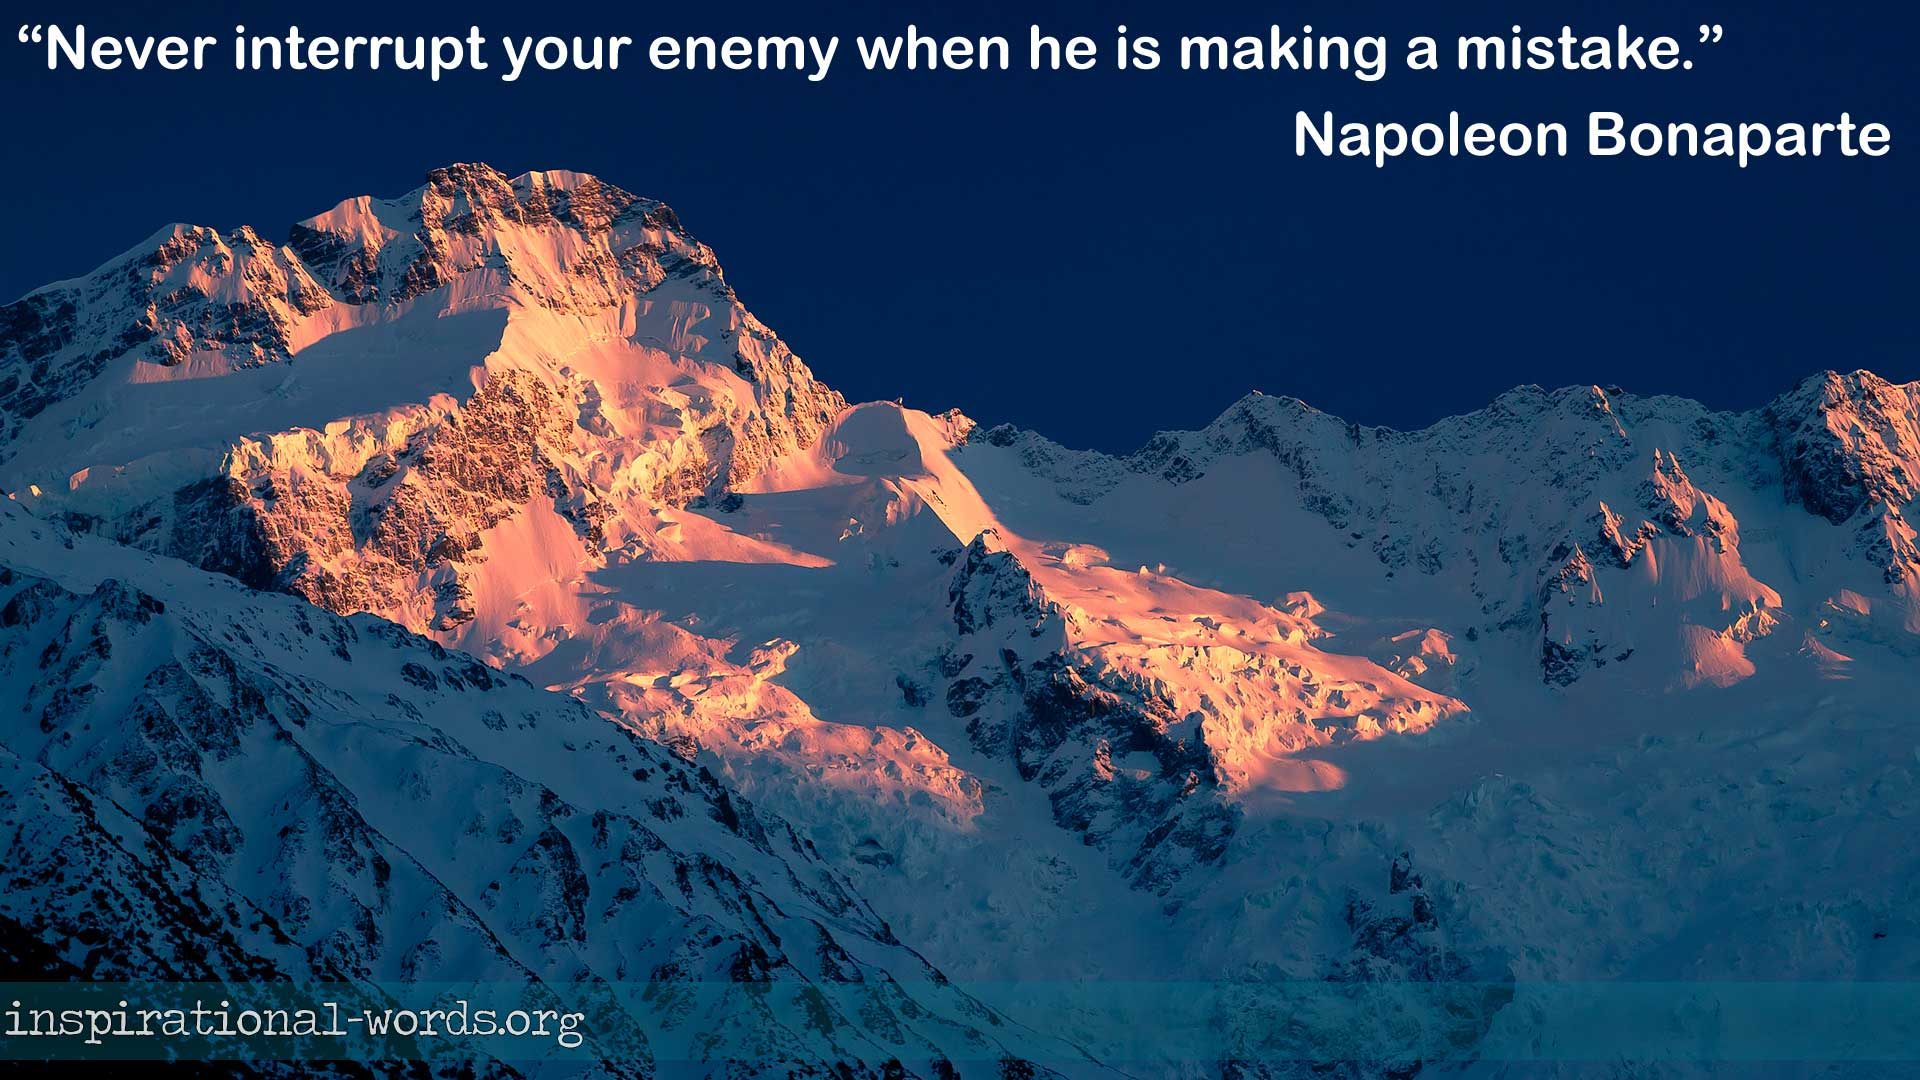 Napoleon Bonaparte inspirational wallpaper